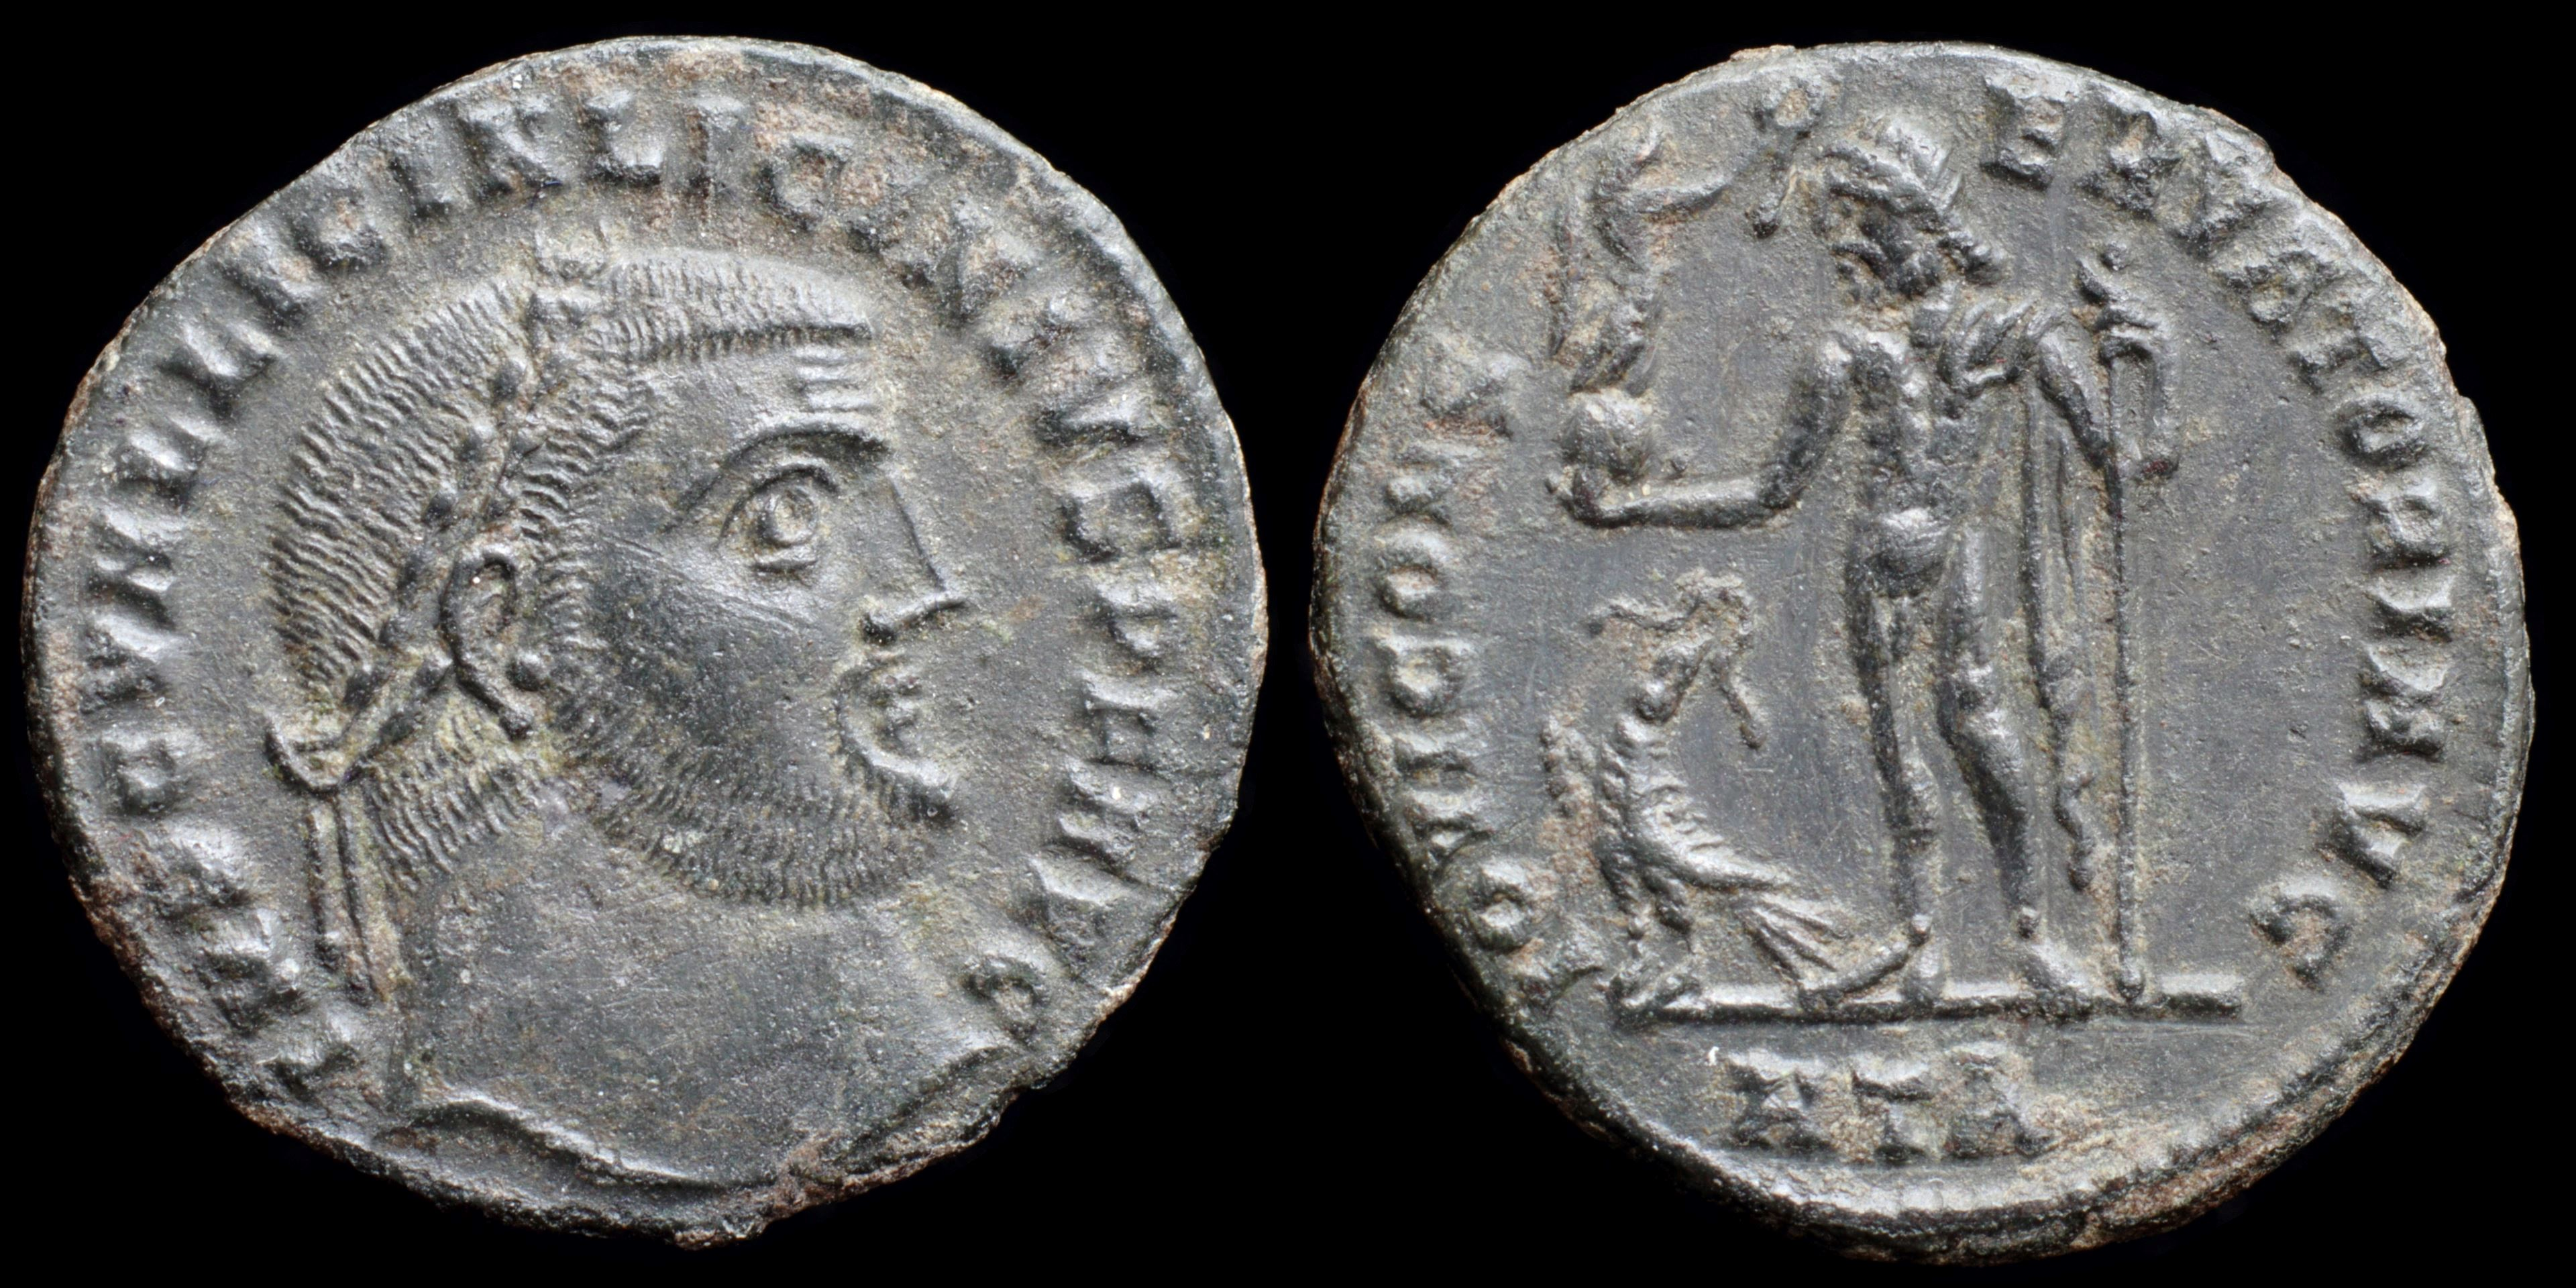 /Files/Images/Coinsite/CoinDB/330_Licinius_I_Heraclea.jpg